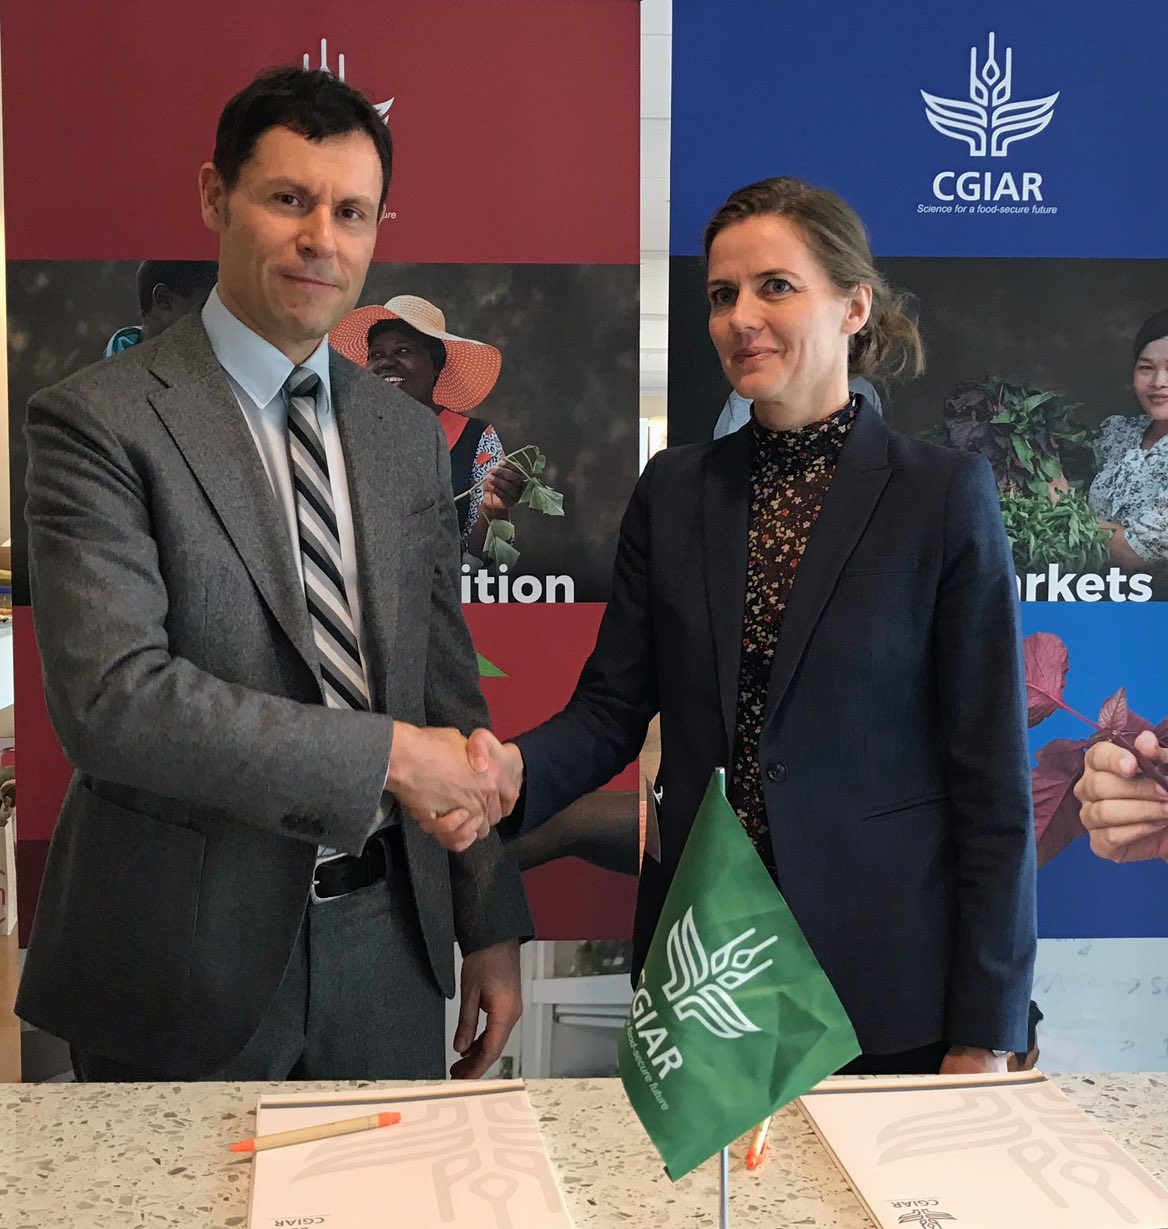 Elwyn Grainger-Jones, Executive Director, CGIAR System Organization, and Ellen Trane Nørby, Danish Minister of Health, join forces in the fight against antimicrobial resistance.